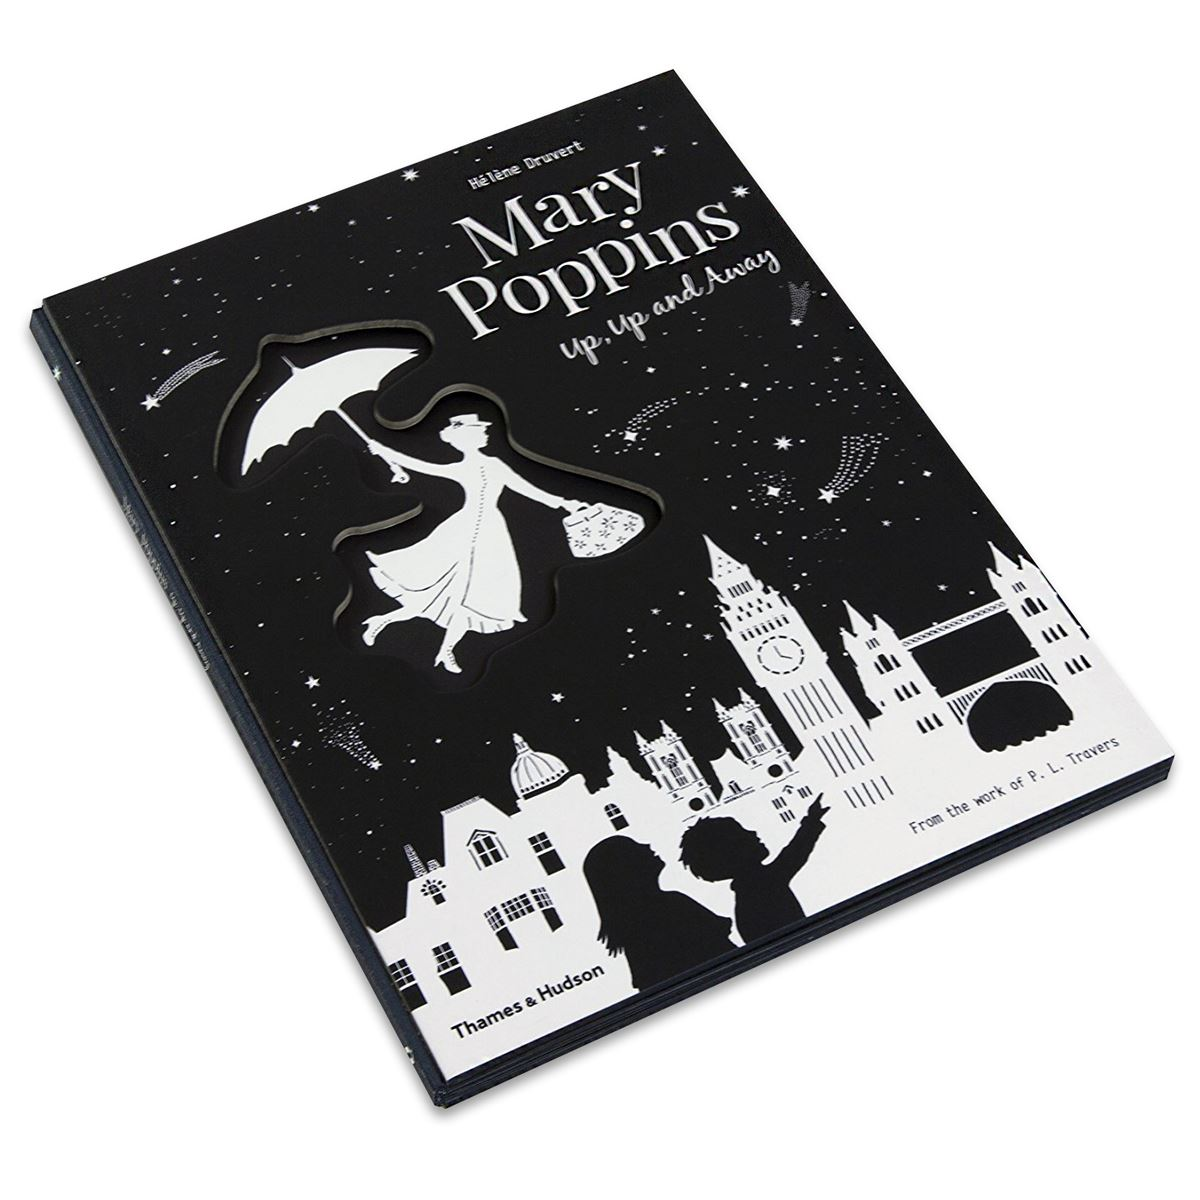 Mary poppins up Libro - Sanborns